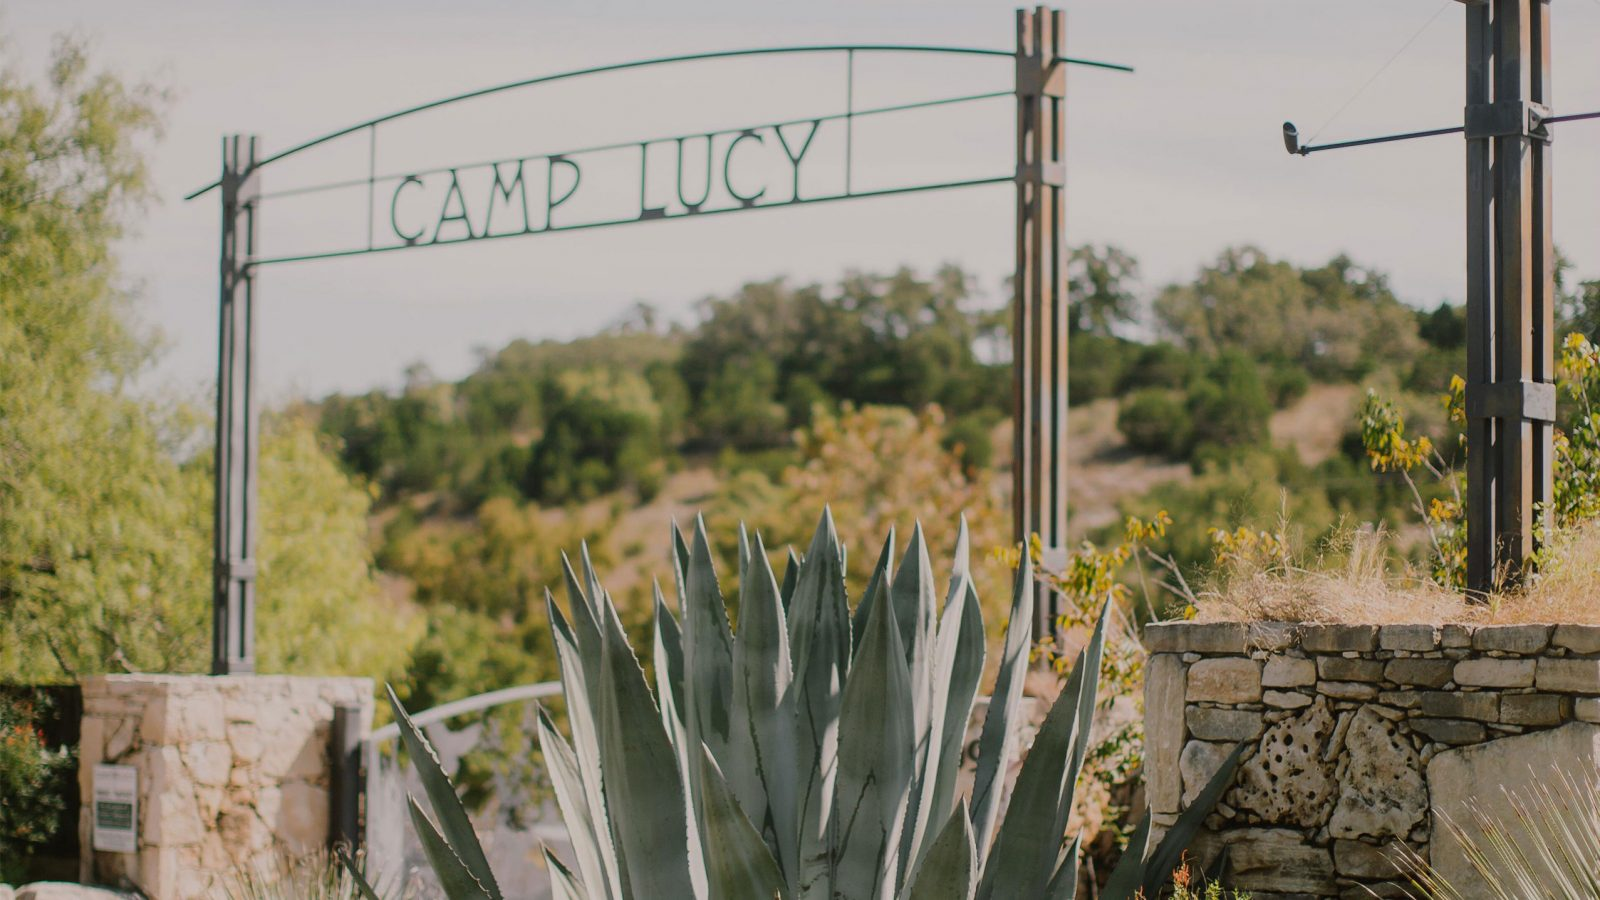 Camp Lucy